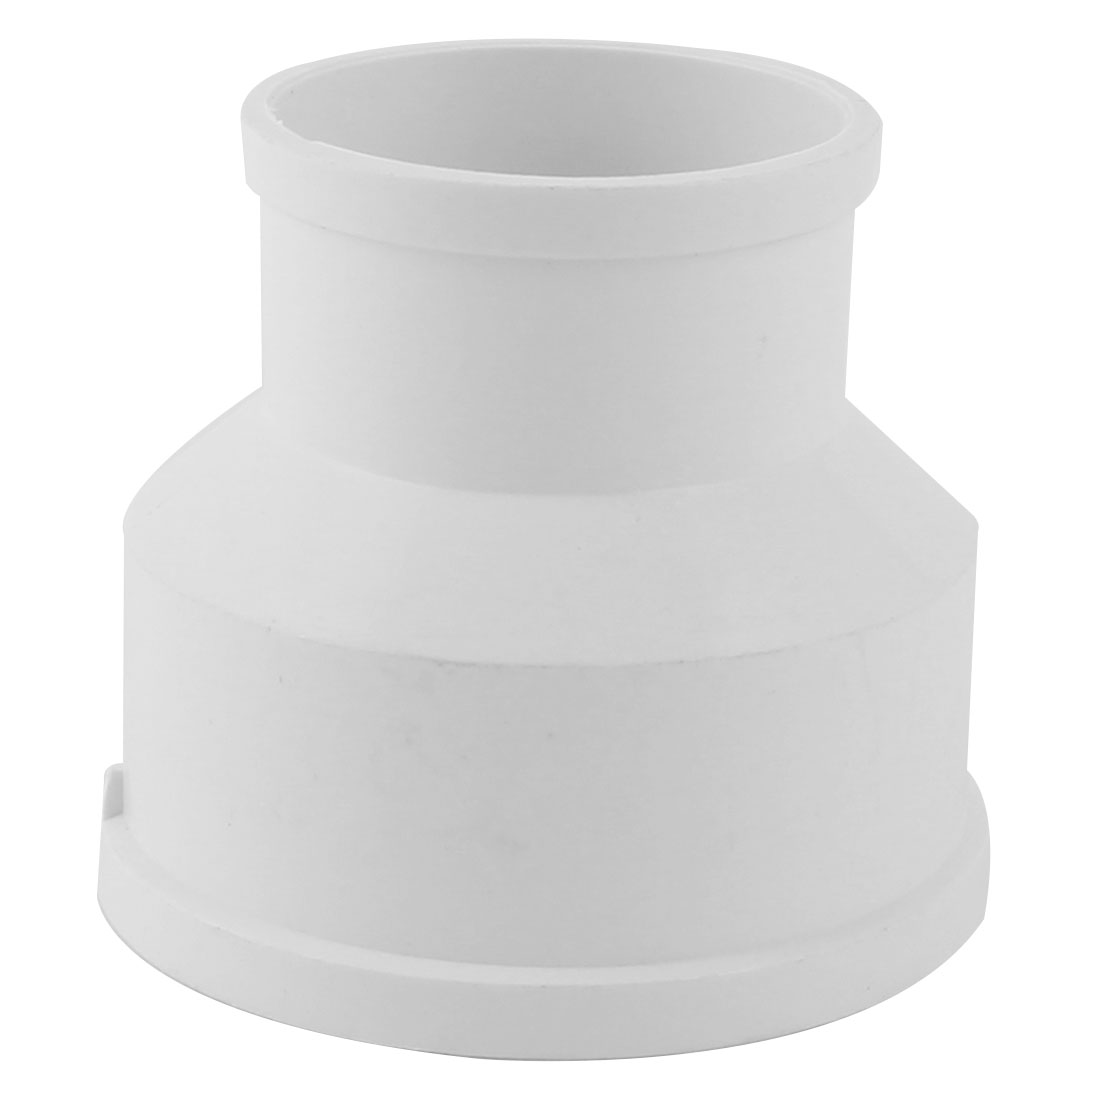 Household Industrial PVC Straight Type Water Drainage Pipe Connector Fitting